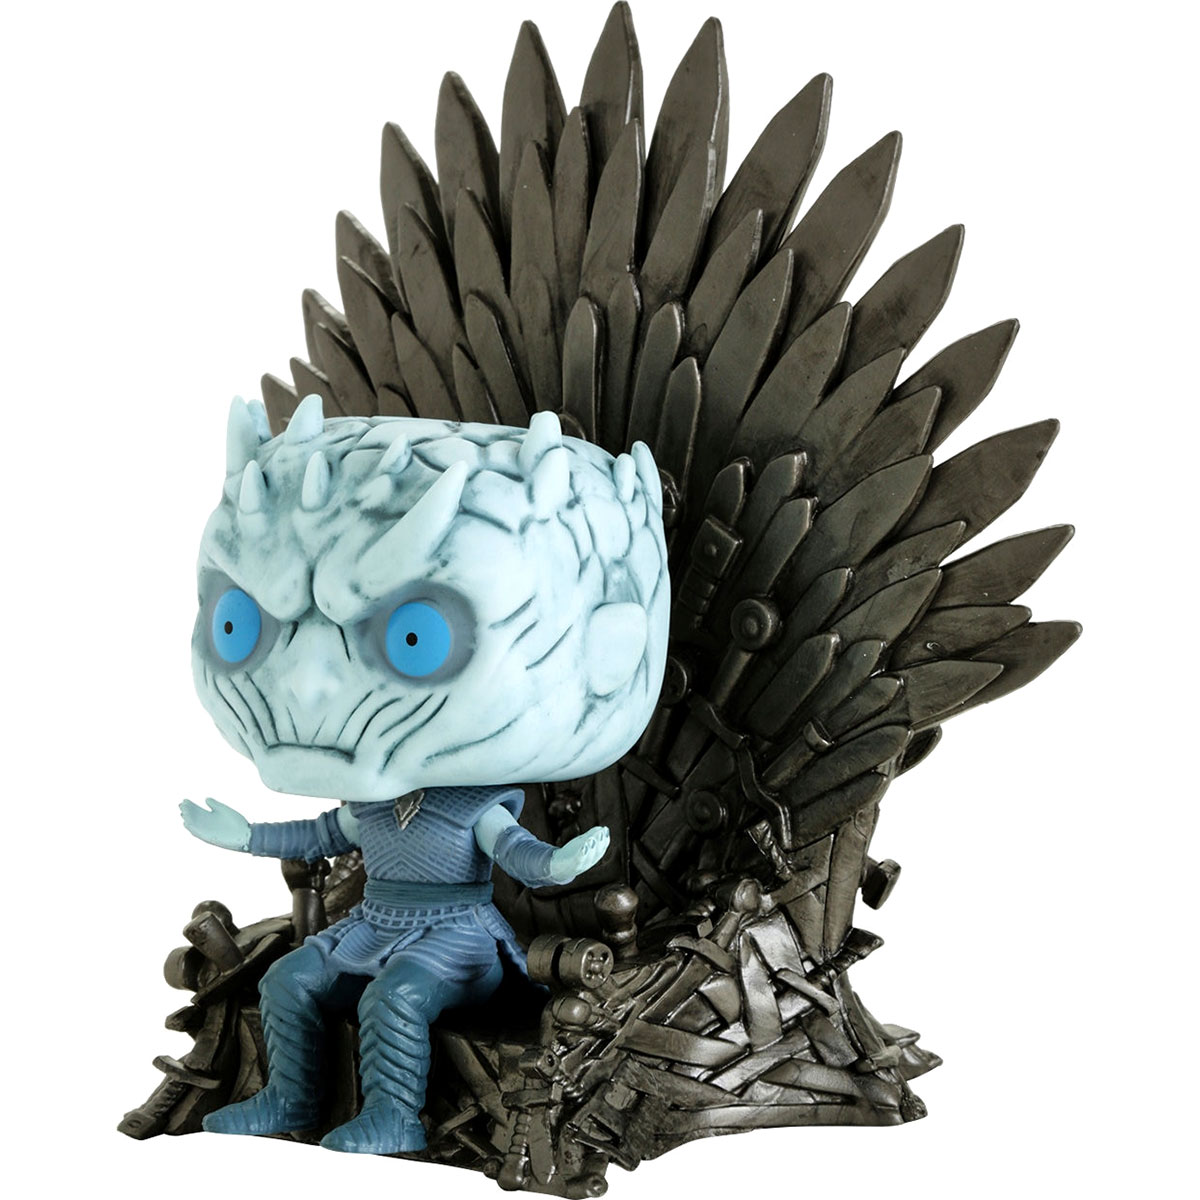 Tyrion Sitting On Iron Throne Deluxe Game of Thrones Funko Pop